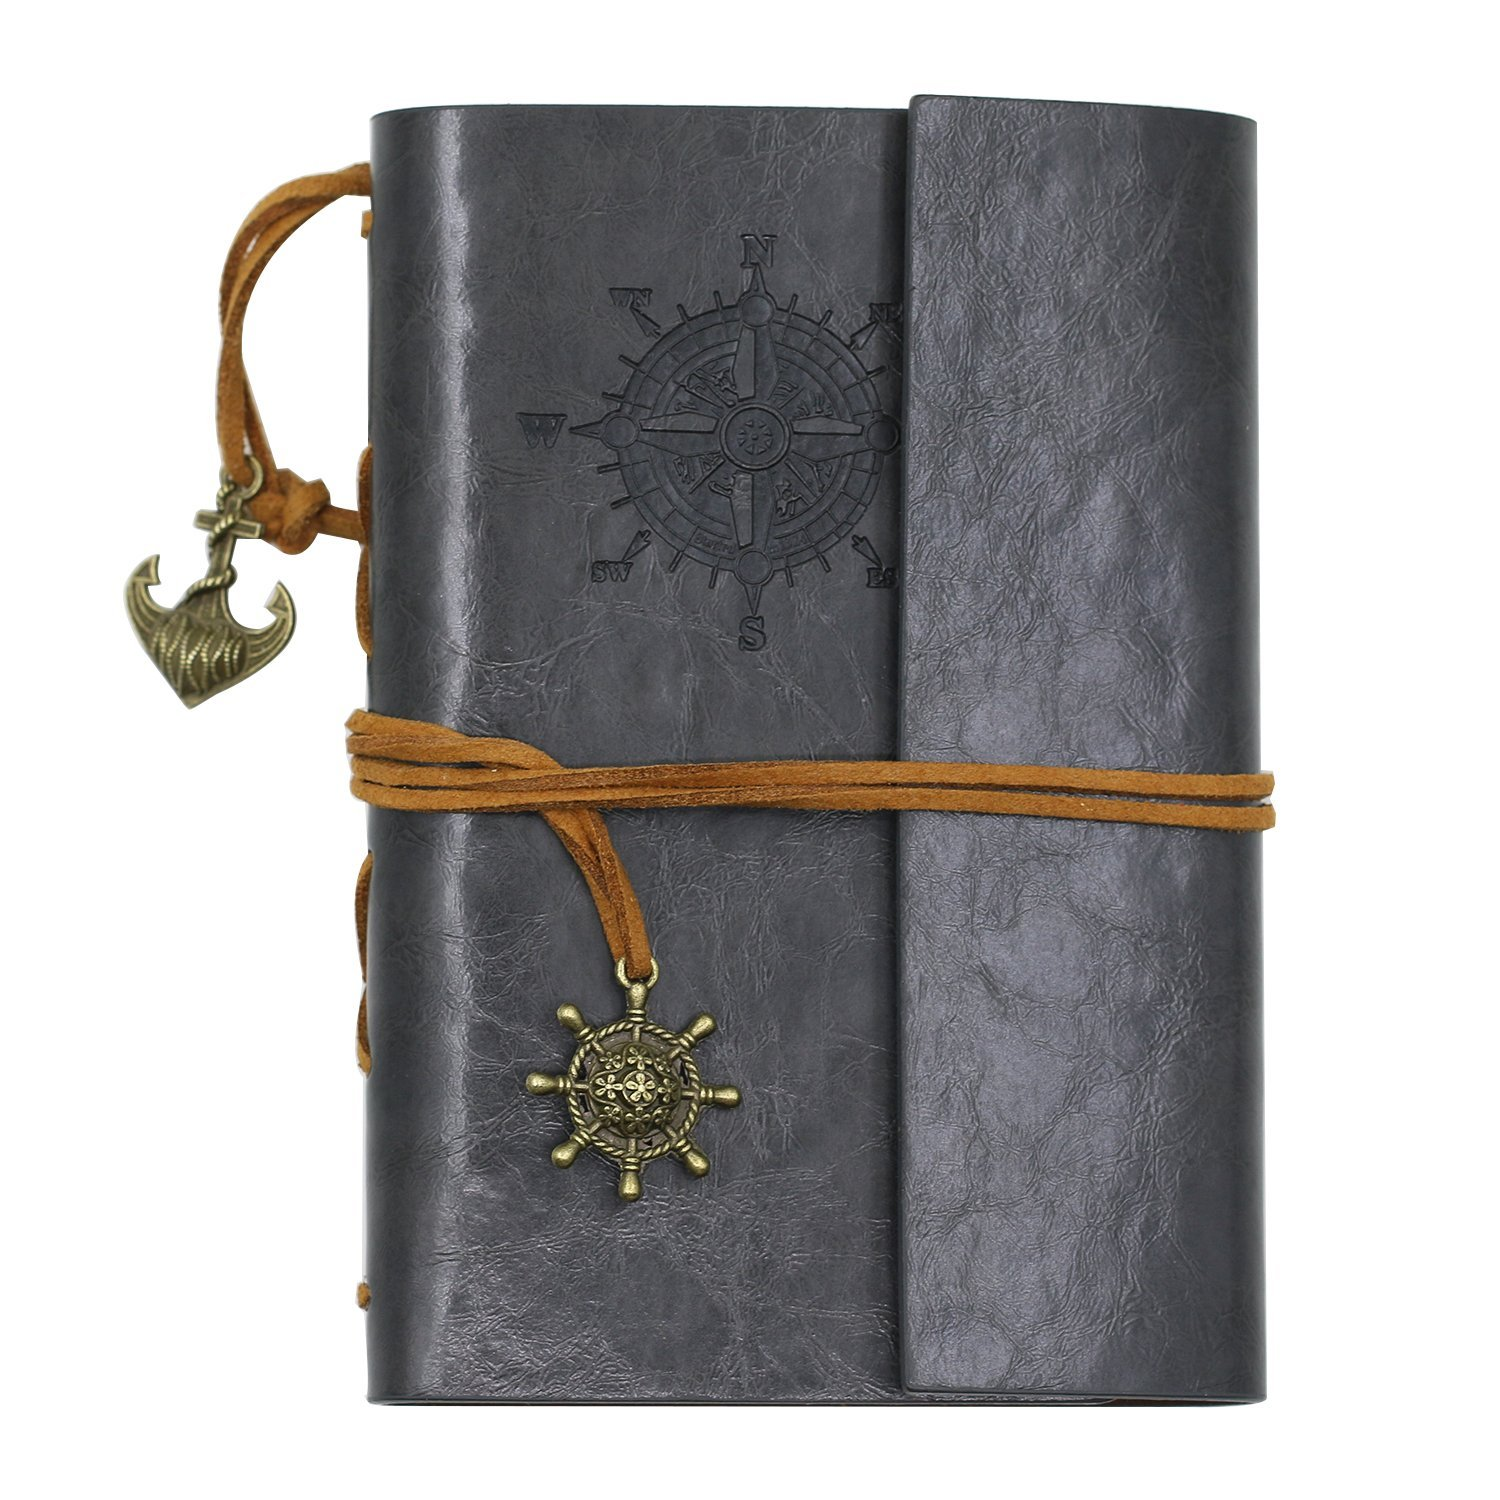 Honghong Retro Anchor Faux Leather Cover Blank Paper Notebook Diary Book with Loose-Leaf binding and String Bound Filofax Gift (Grey)